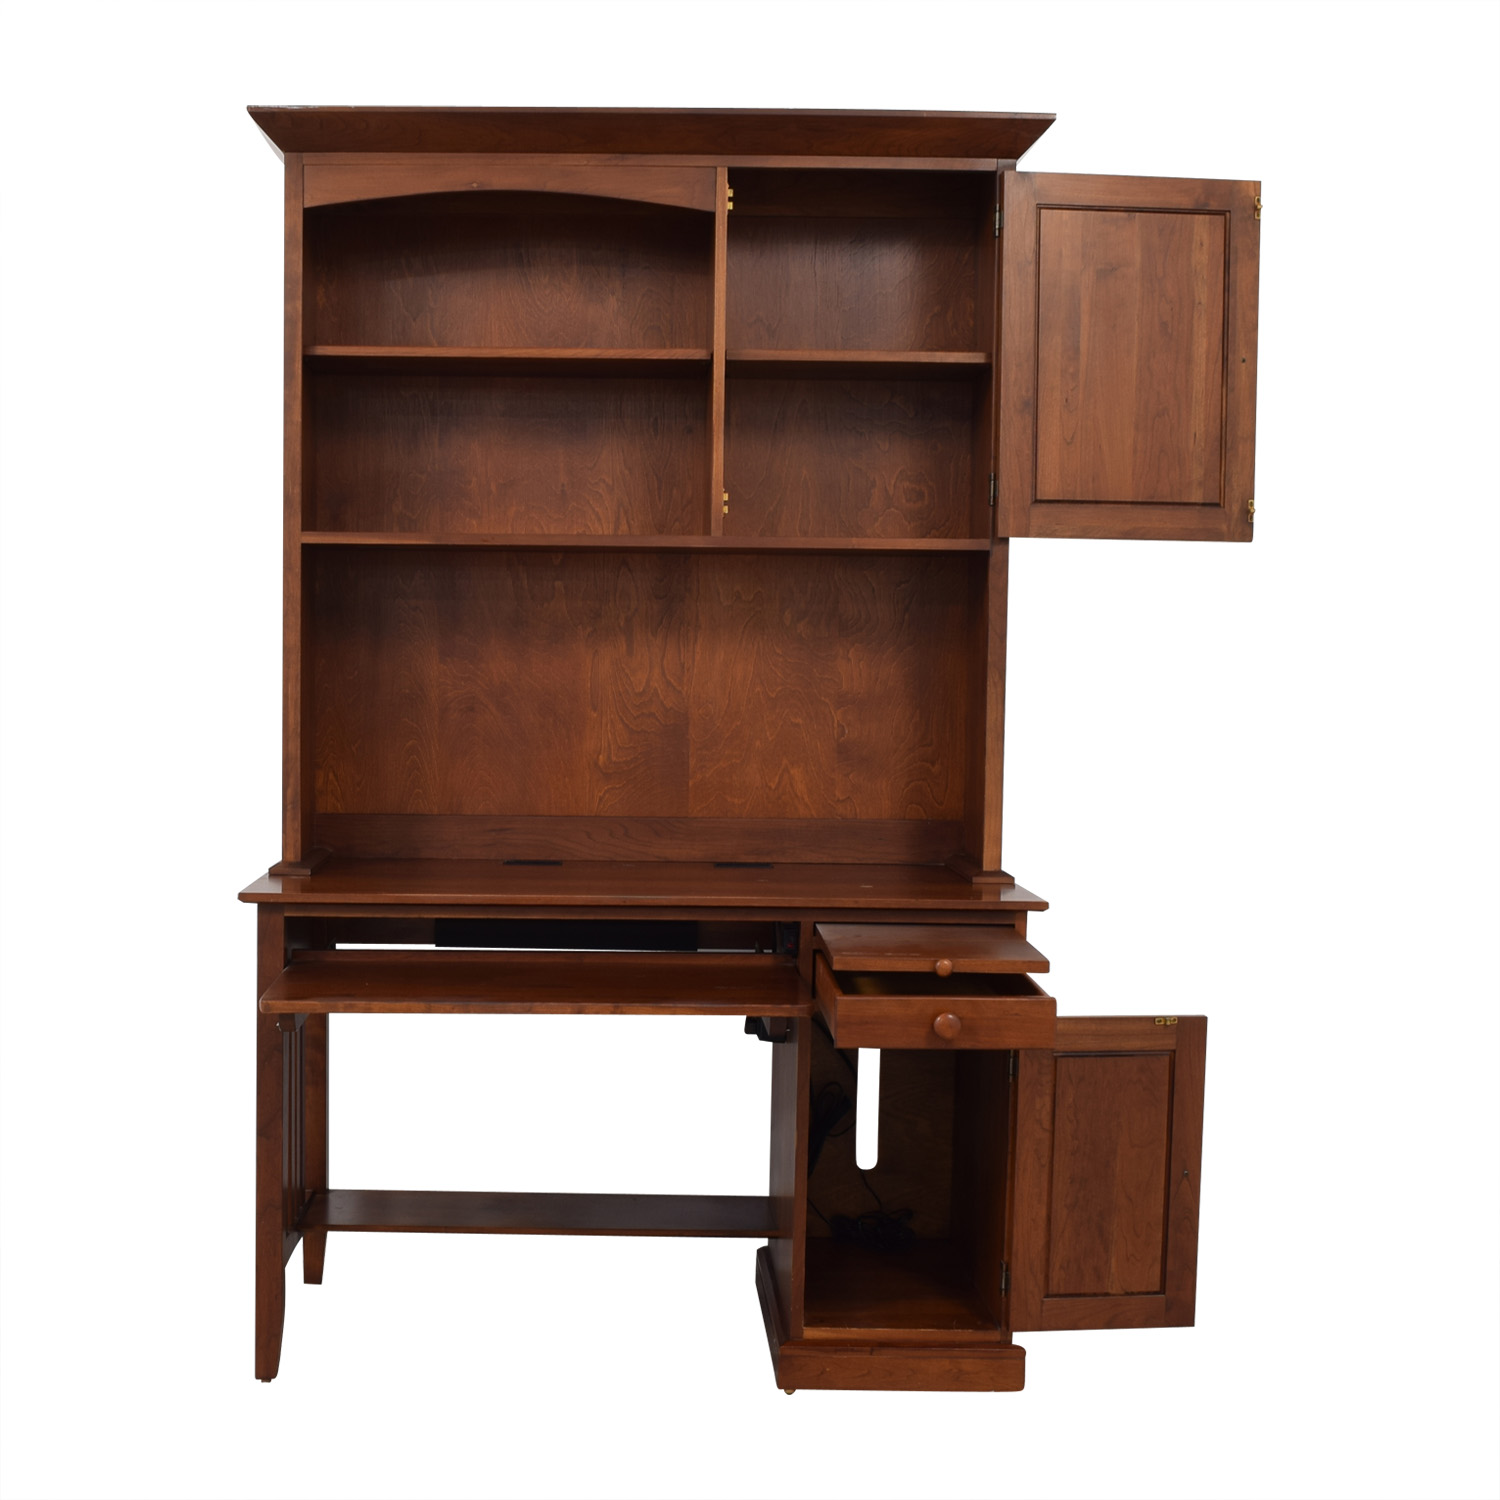 Ethan Allen Ethan Allen Computer Desk With Hutch dimensions